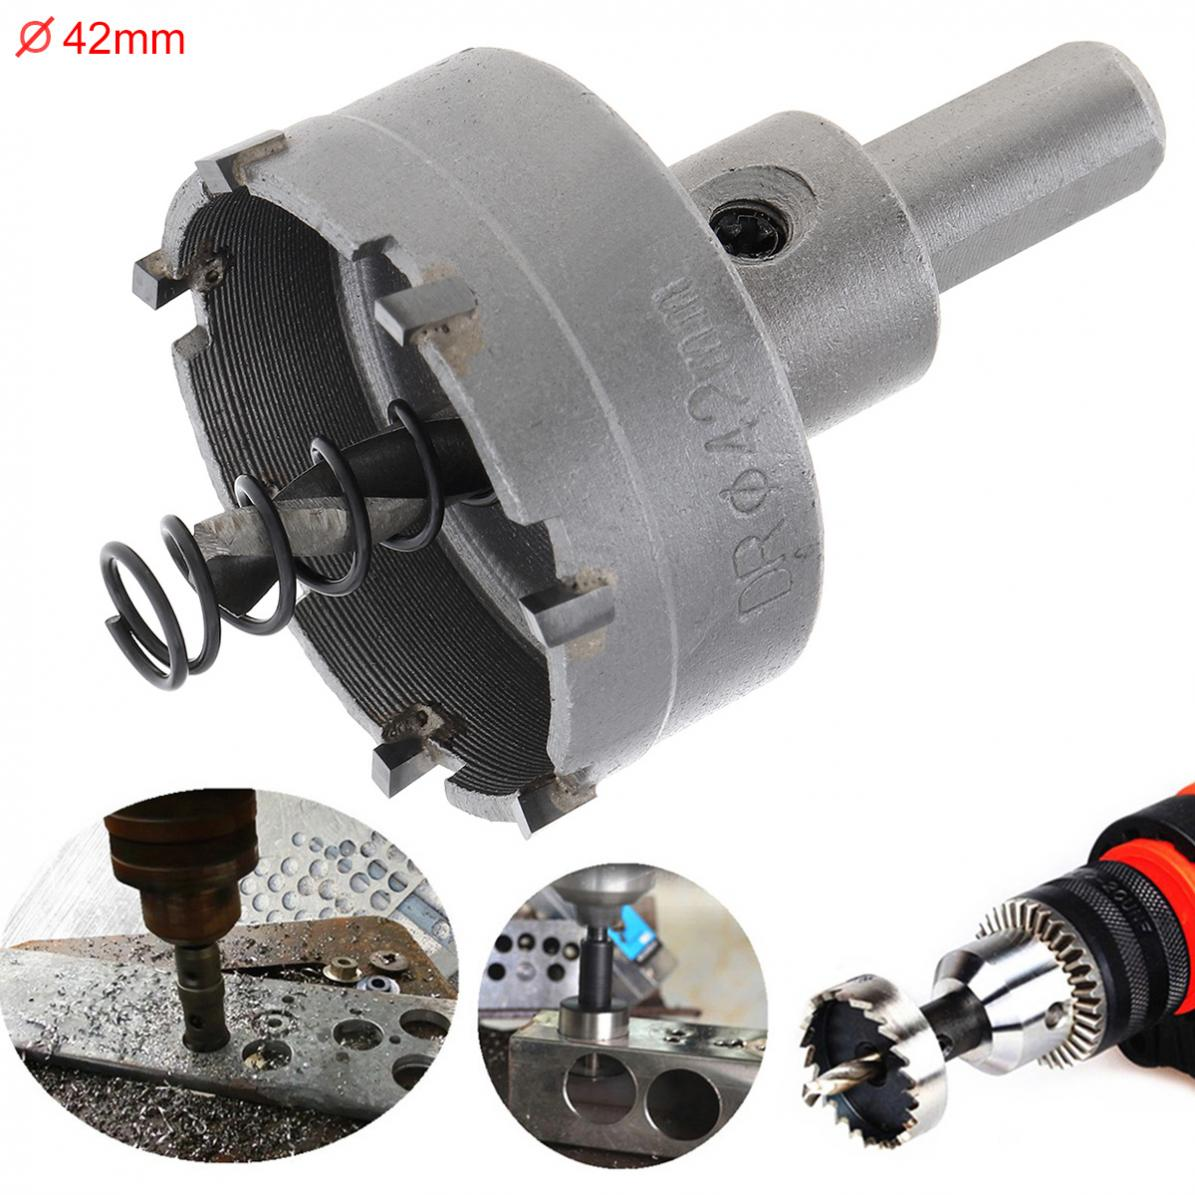 42MM Universal Hole Saw Carbide Cutter Head HSS Drill Set Hole For Steel / Aluminum Alloy / Metal Plate / Iron Plate